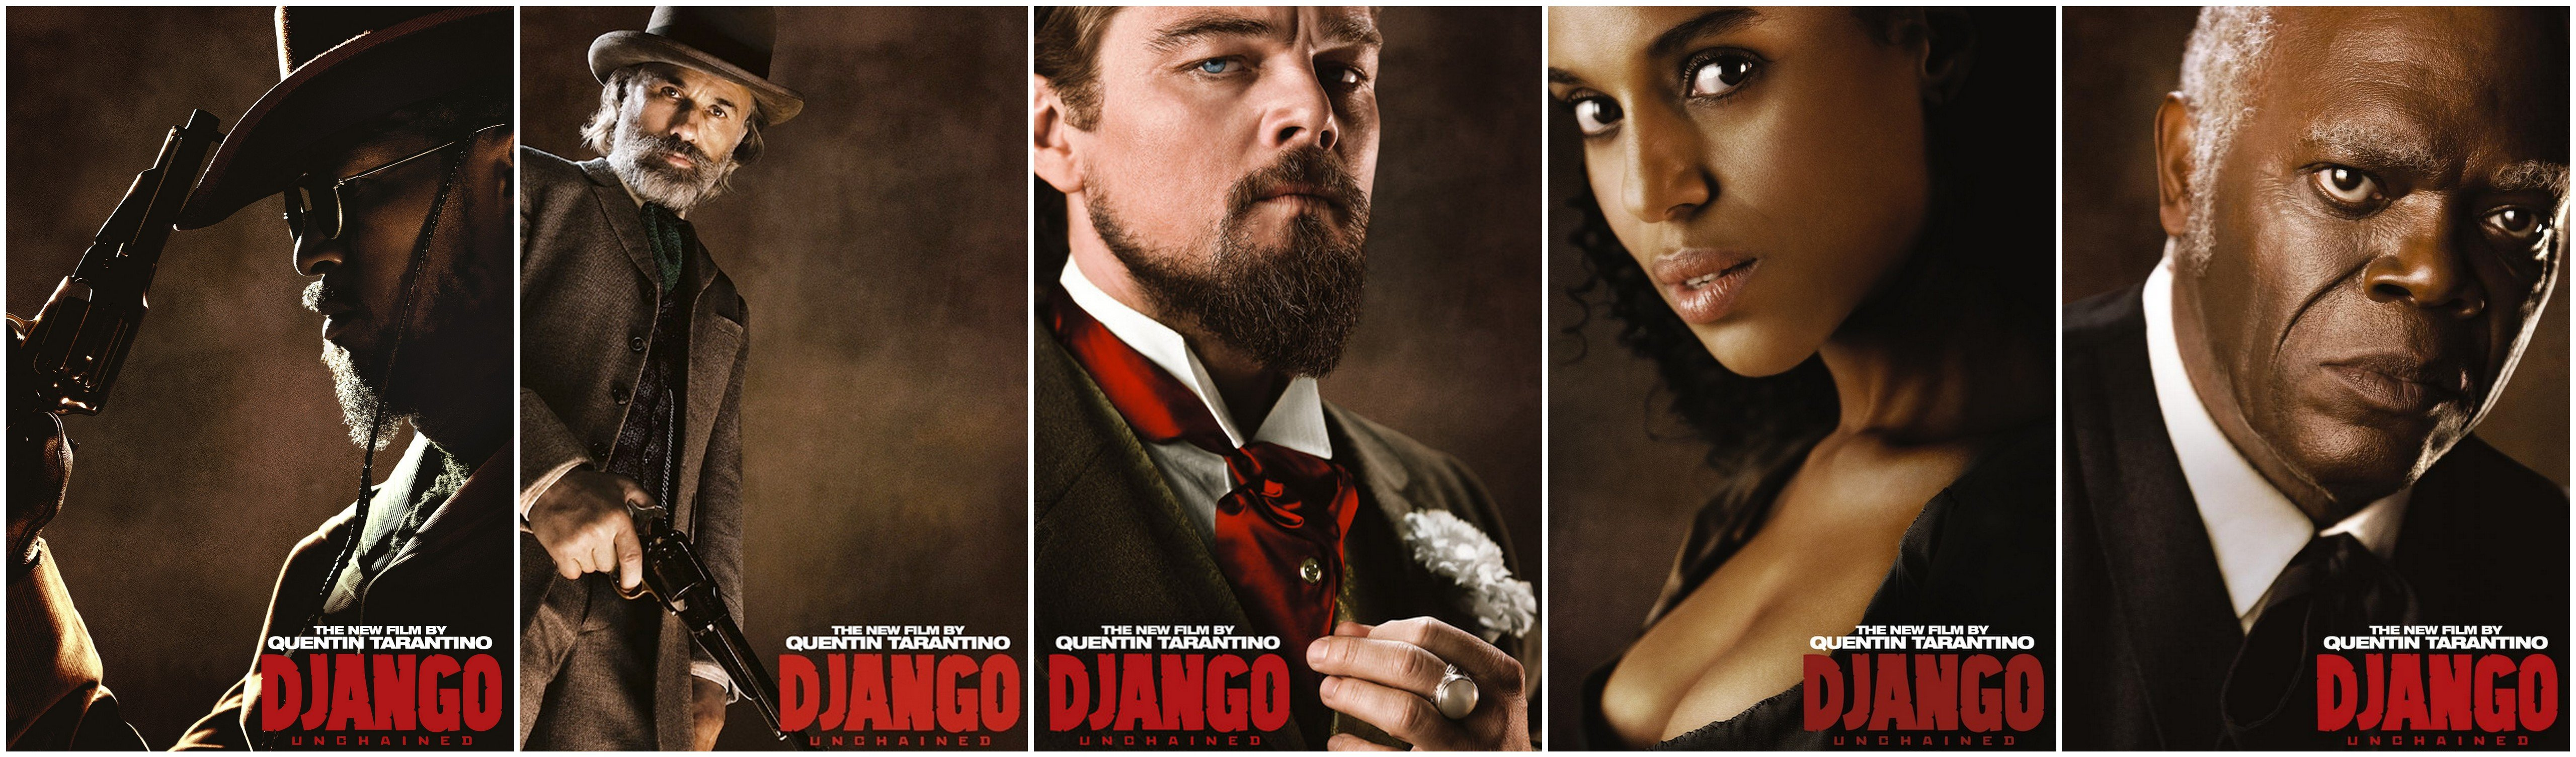 Take 2: Django Unchained feature image